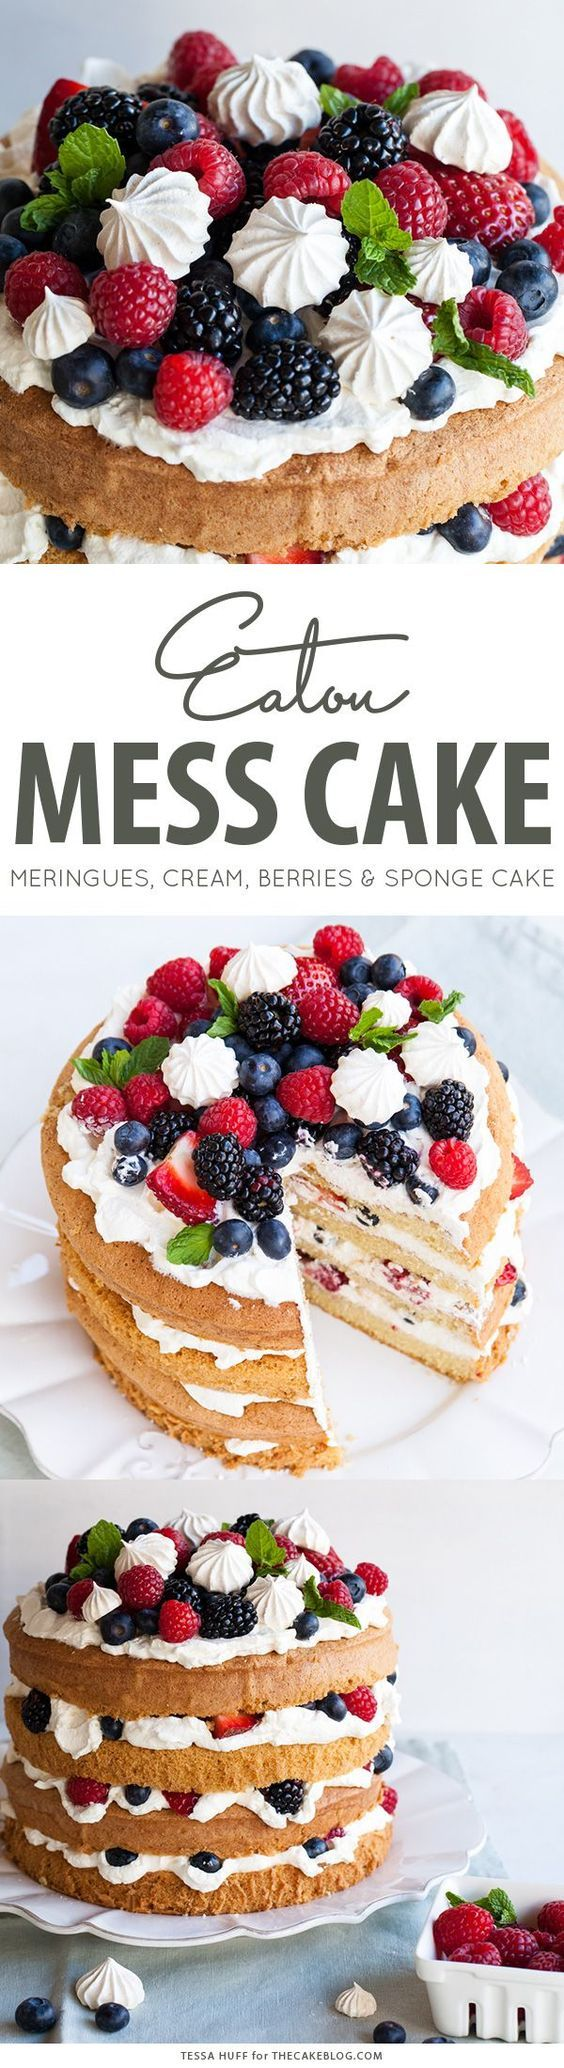 Inspired by the classic dessert, this Eaton Mess Cake combines crisp meringues, sweetened cream, fresh berries. Perfect summer dessert!